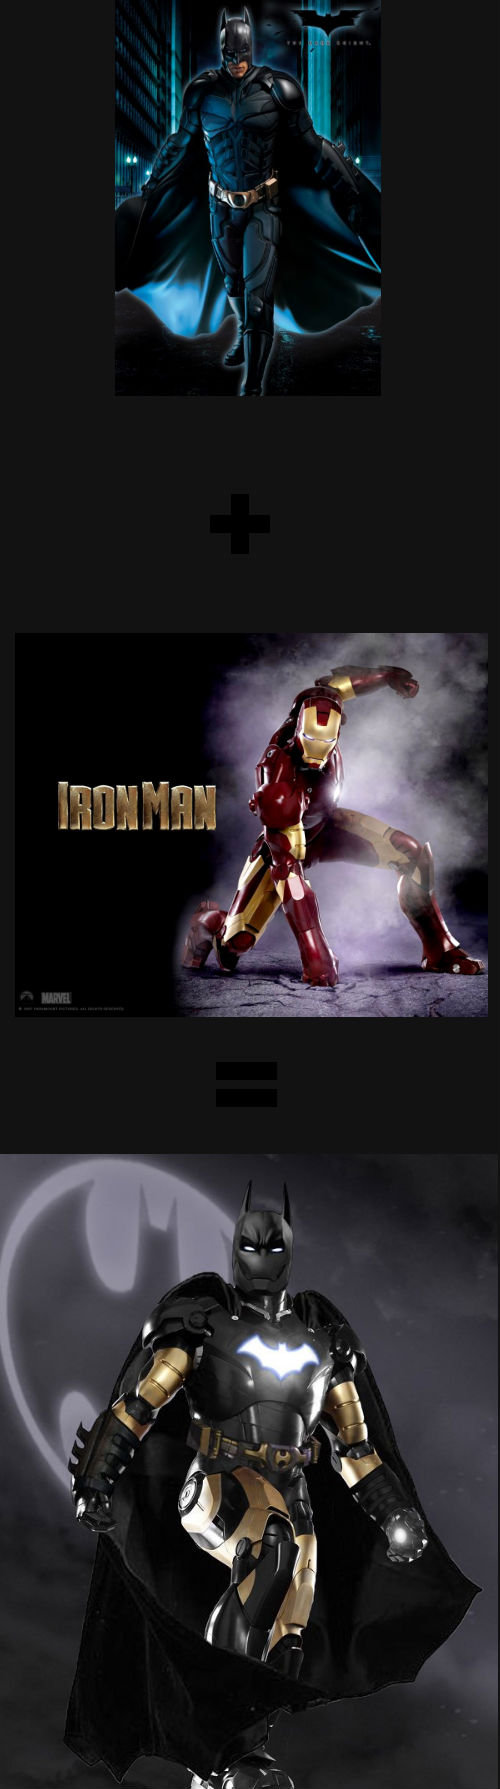 The Iron Bat. Half Batman half Ironman all billionaire... i tried to mix their names but all i got where batman and ironman but we could also go with manman / iron bat